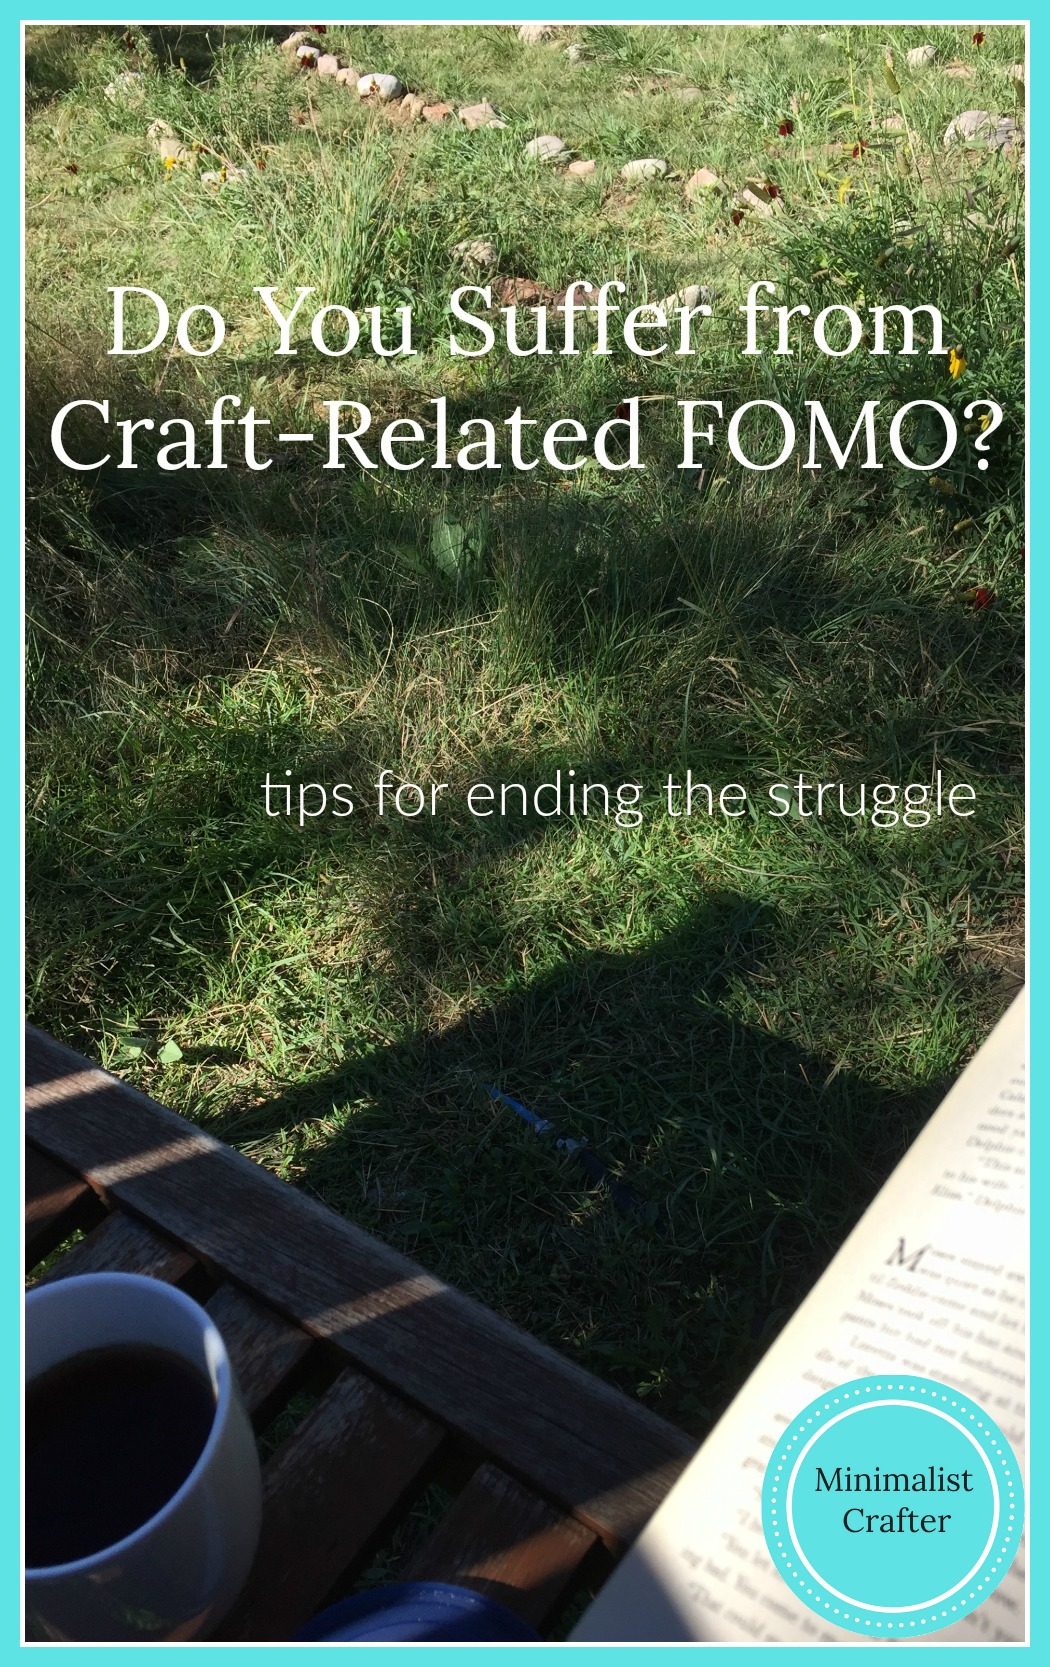 Do you have craft-related FOMO? Here are some tips for how to deal with it.